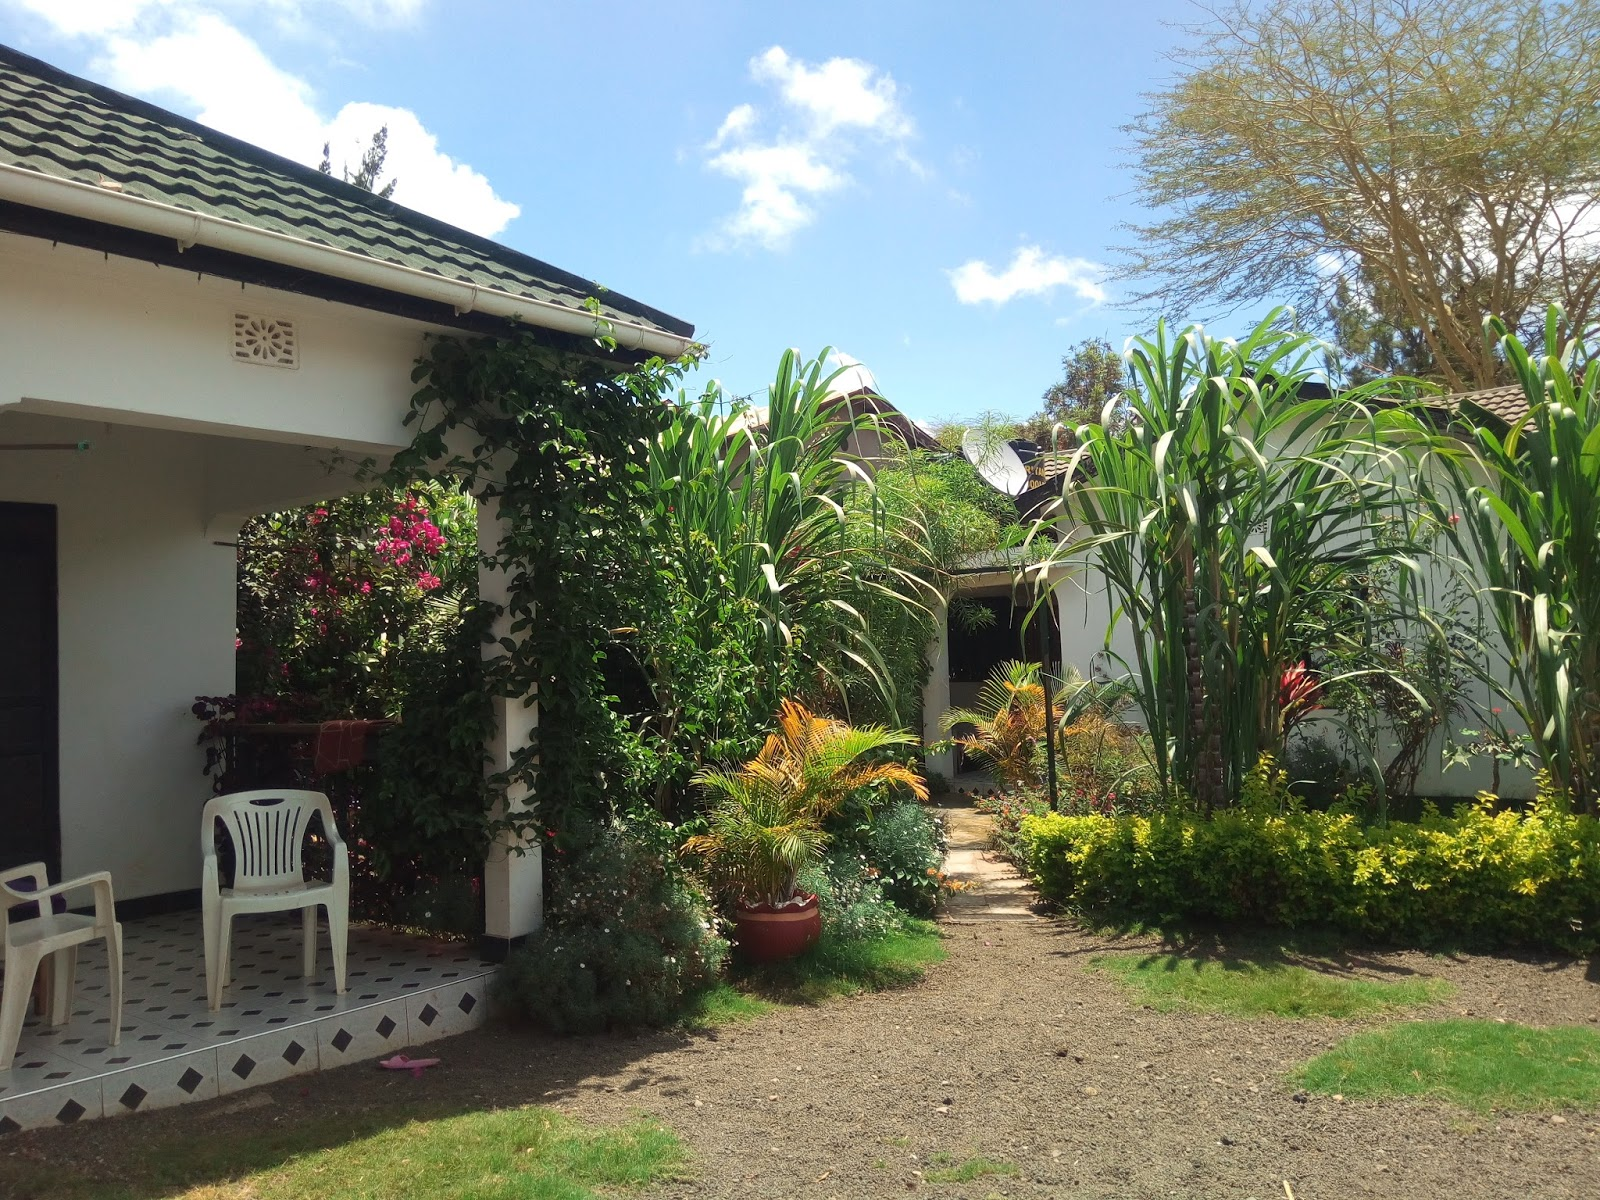 Rent house in Tanzania Arusha rent houses, Houses for sale,vacation ...